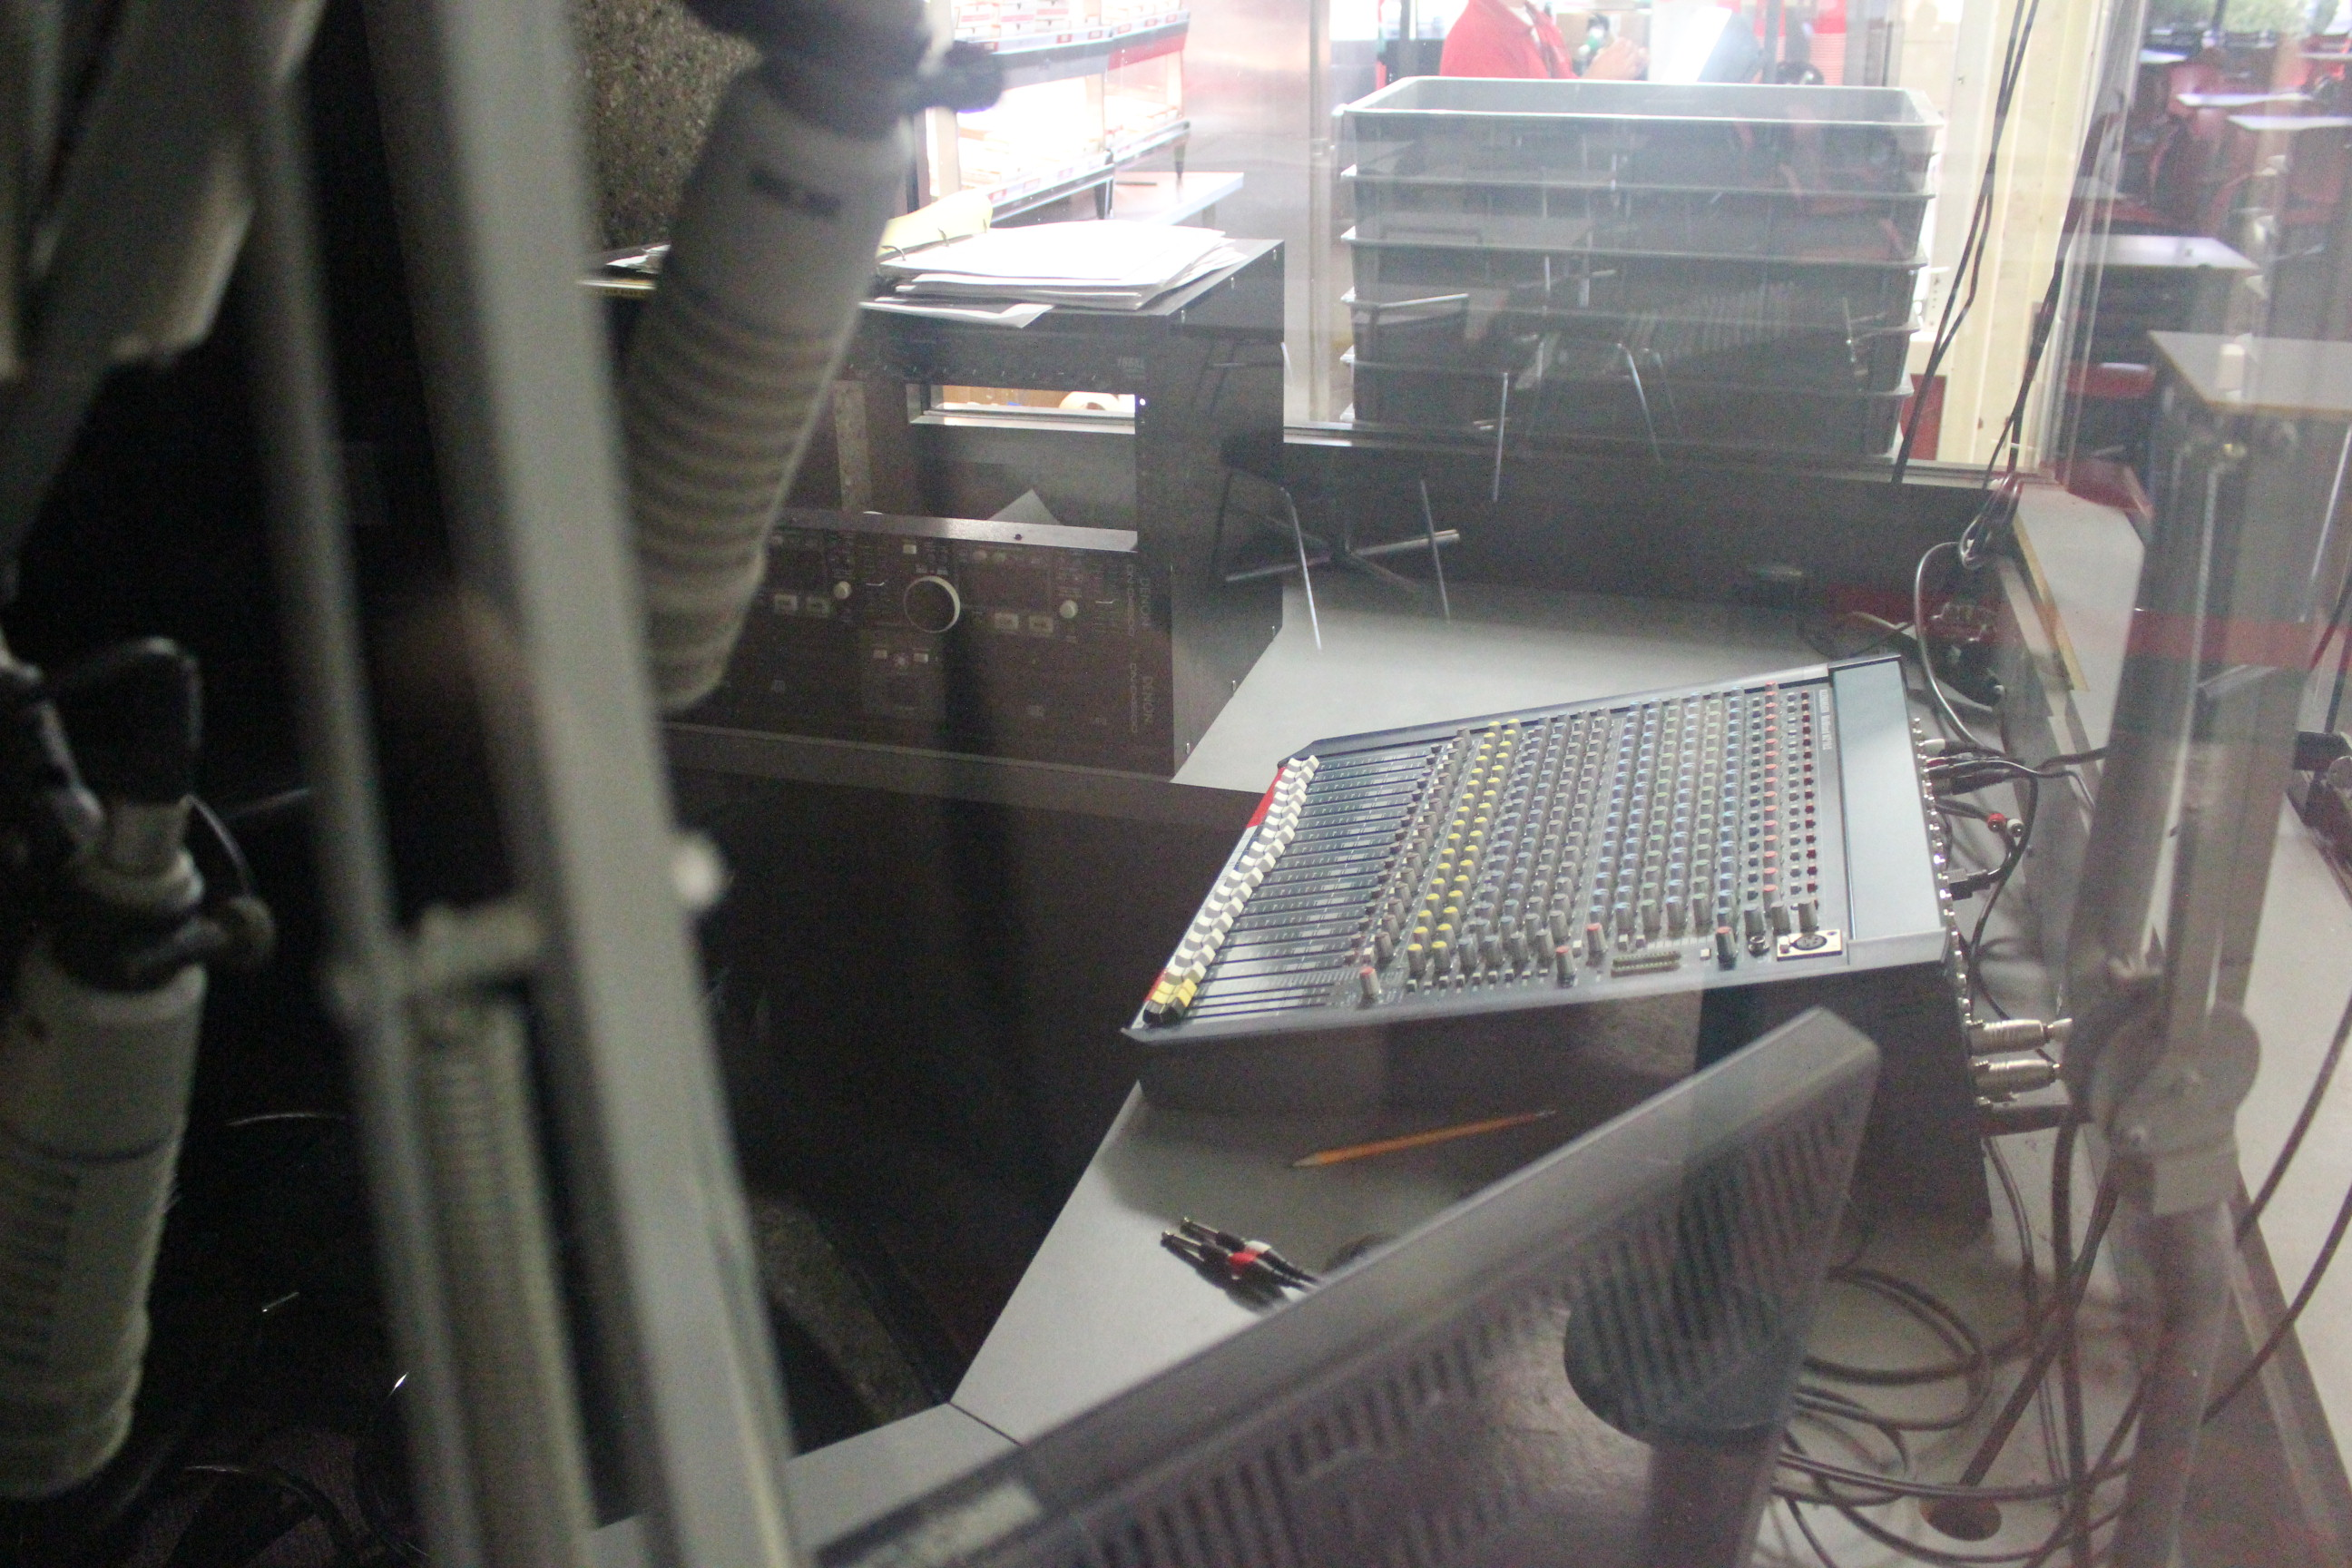 Control panels in the radio station gather dust after months of neglect. The WLCV radio station was shut down at the beginning of the fall 2012 semester.